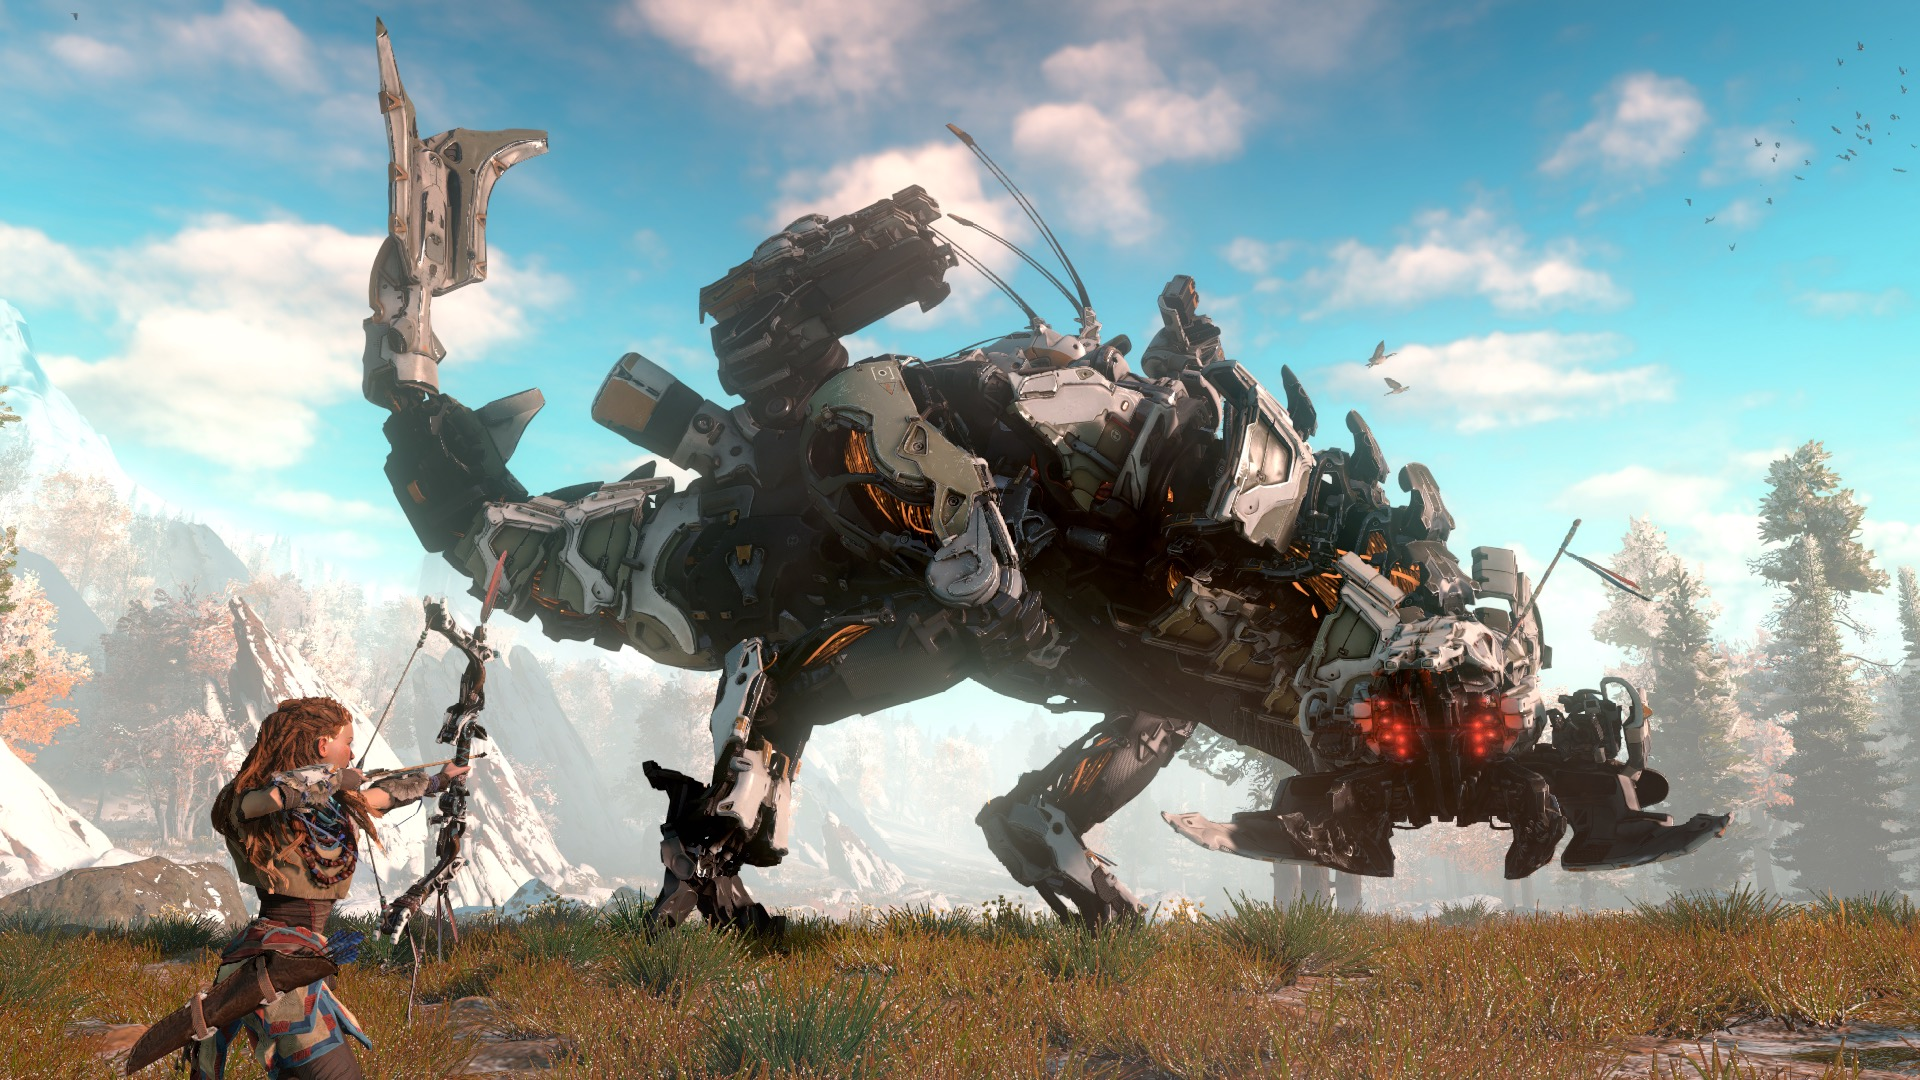 PS4 exclusive Horizon: Zero Dawn coming to PC